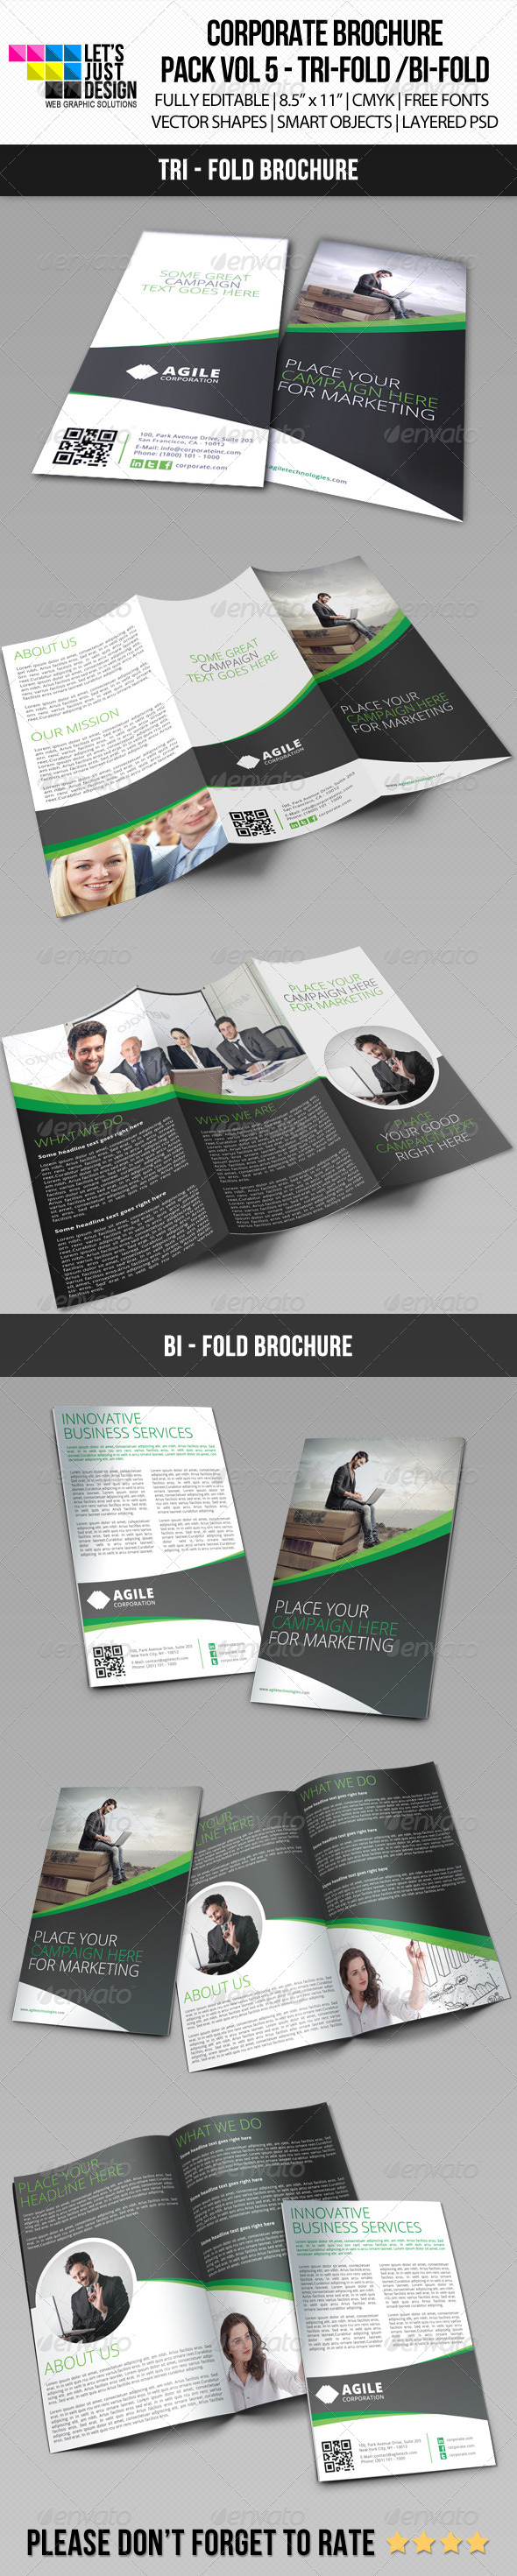 Creative Corporate Brochure Bundle Vol 6 - Corporate Brochures